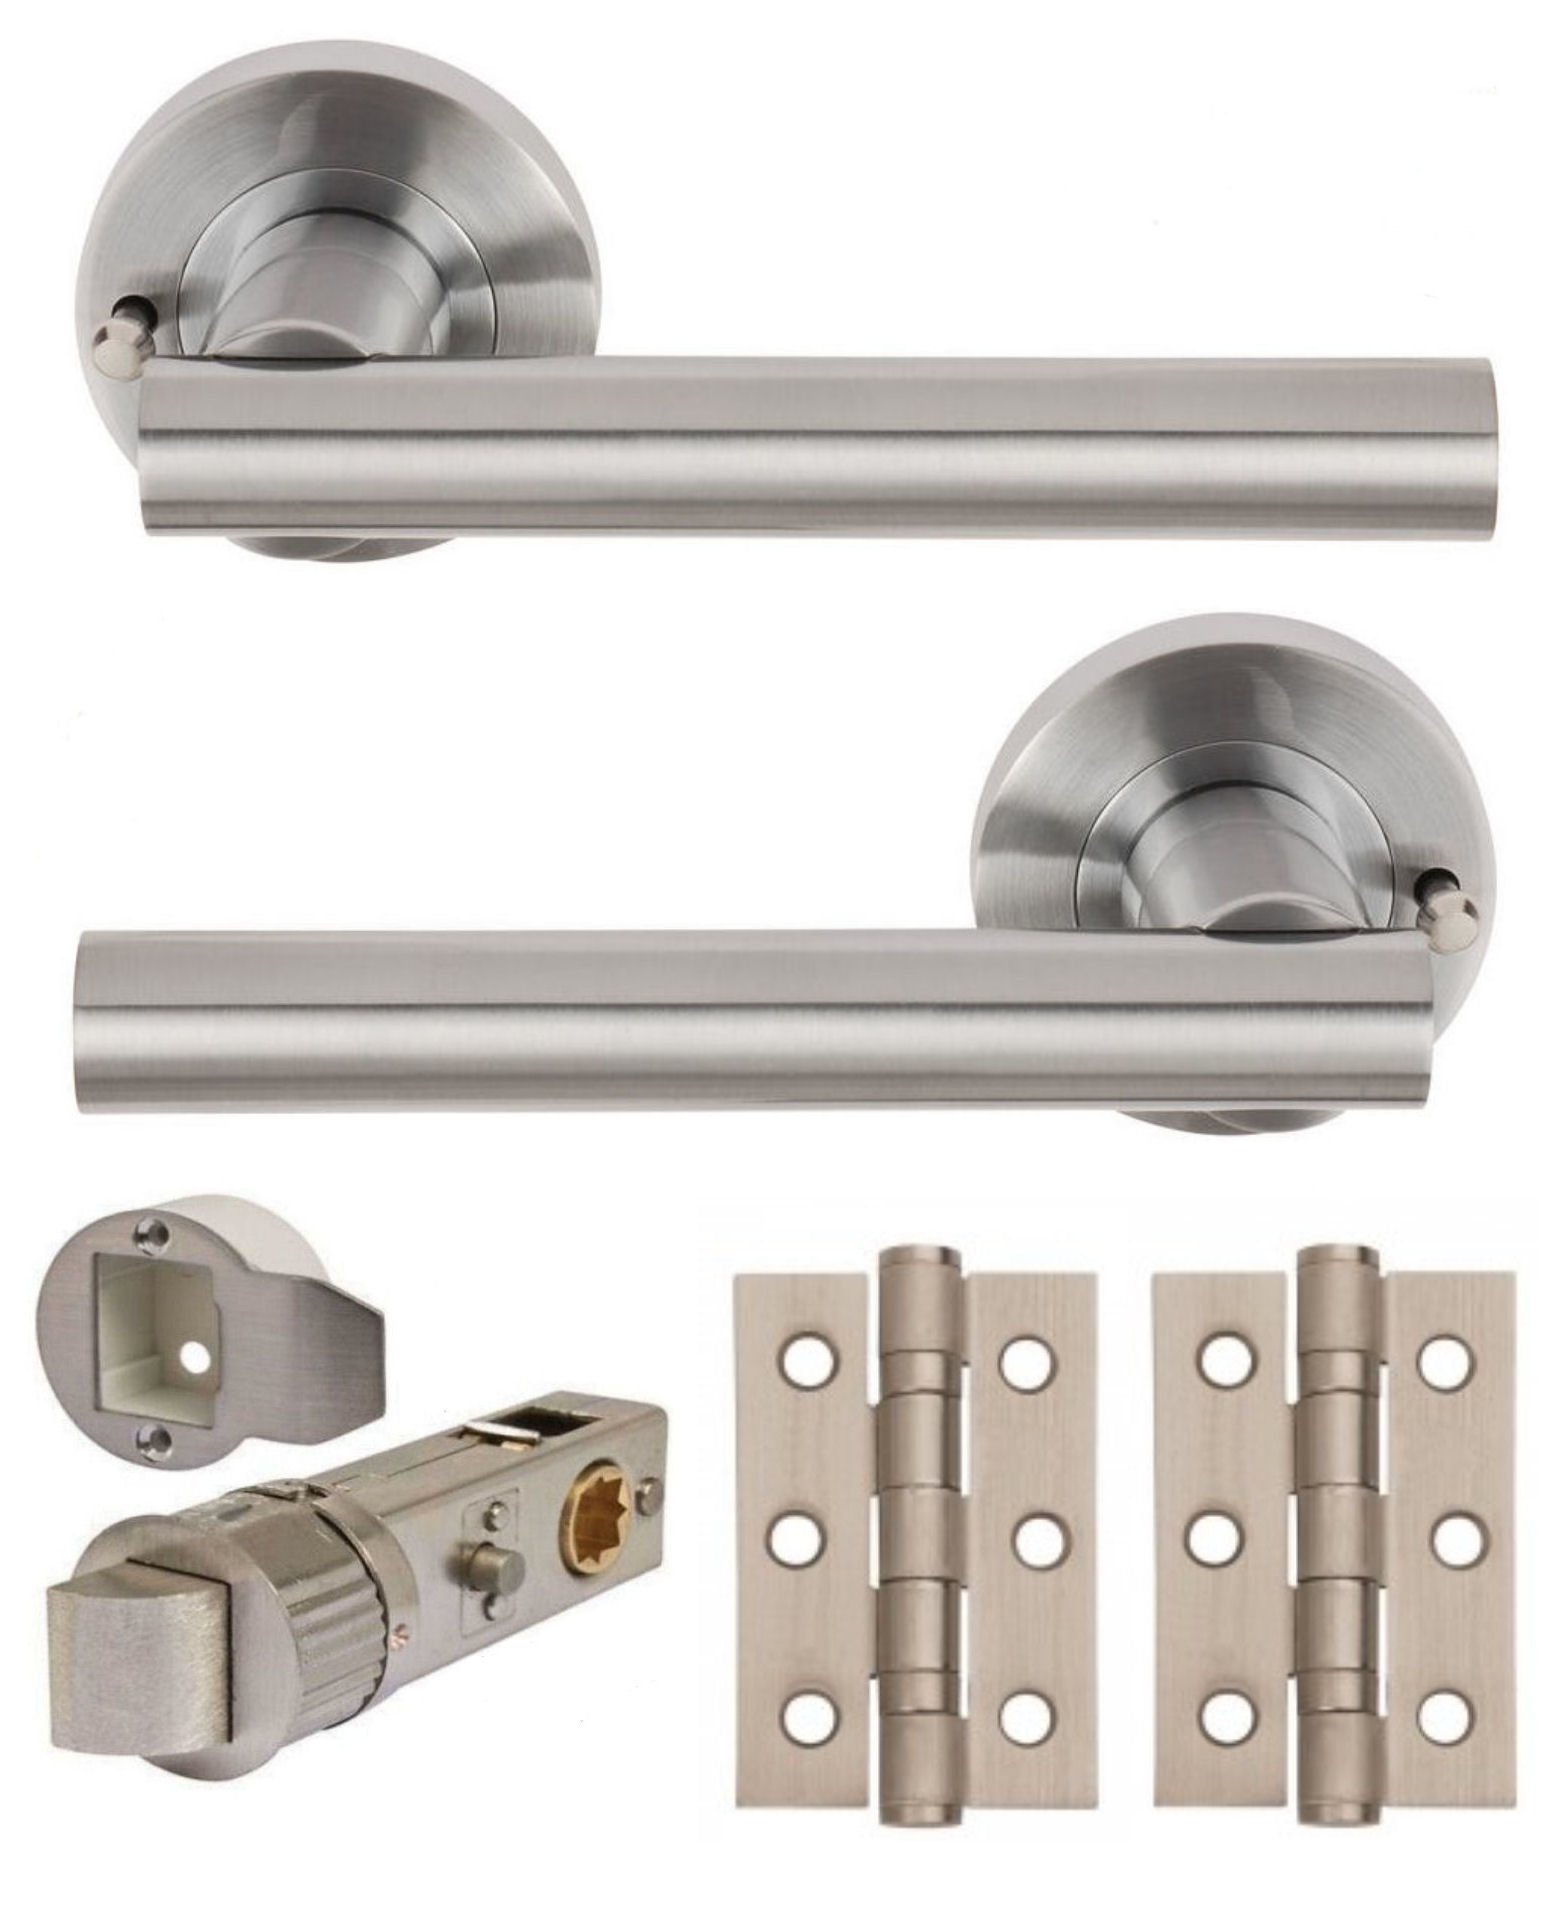 Sultan Satin Chrome 52mm Round Rose Push Button Privacy (Bathroom) + 3 inch  Hinges